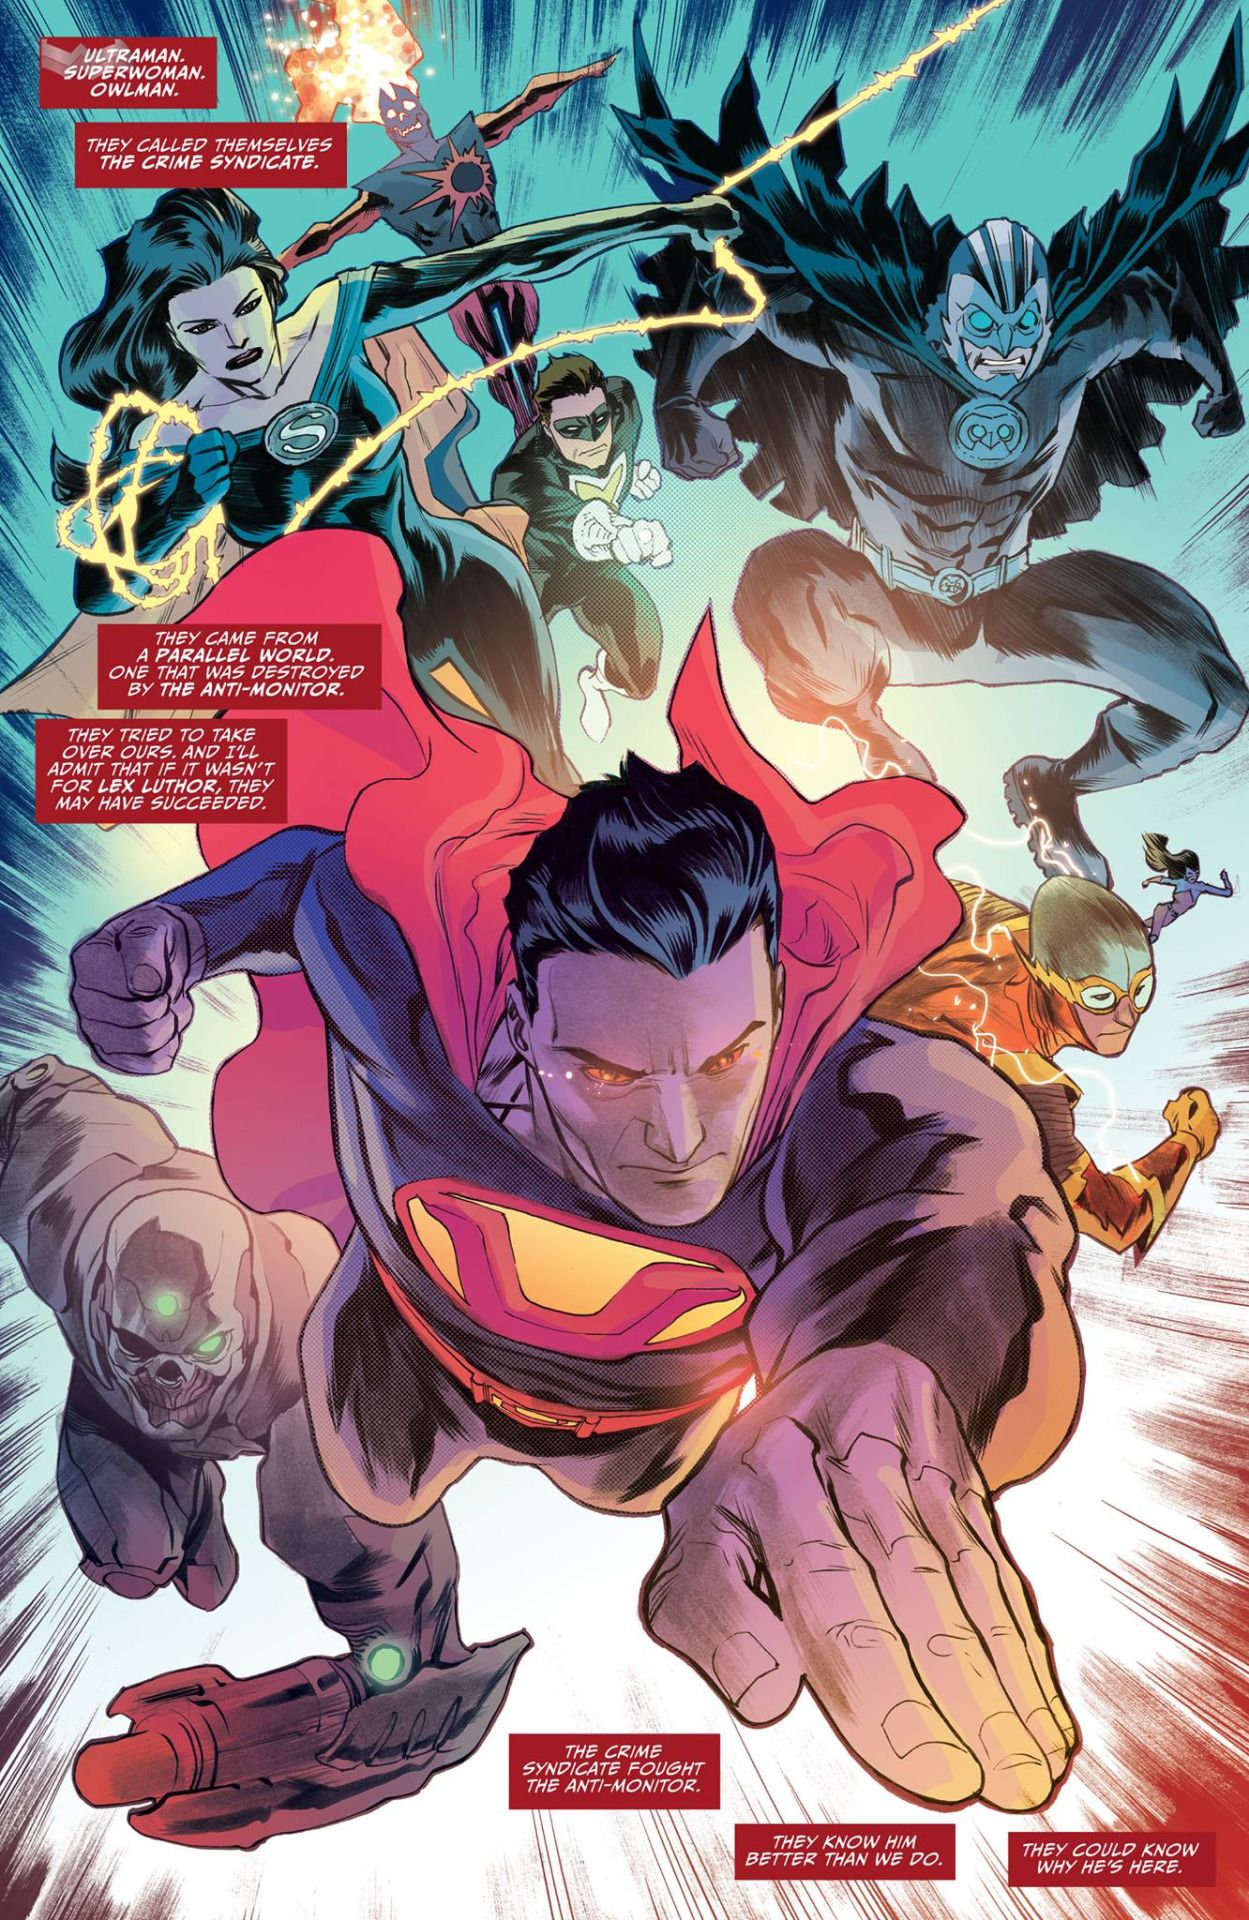 Justice League #46 interior art by Francis Manapul * | DC Comics ...